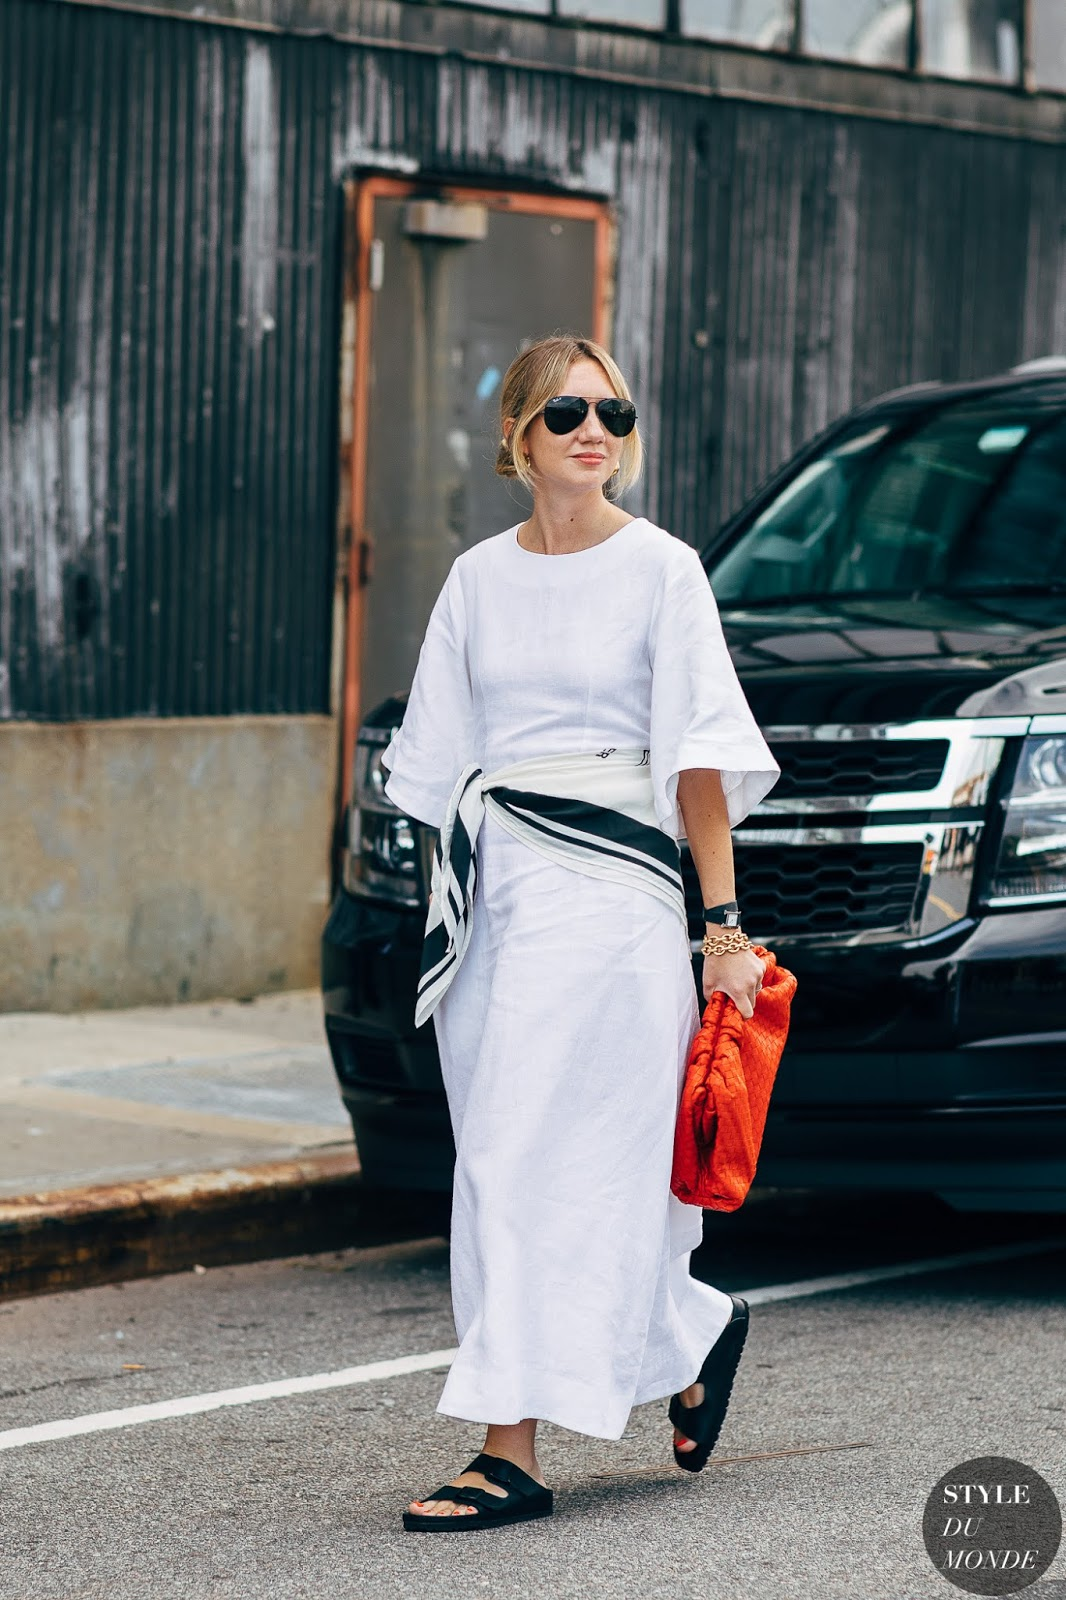 The Luxe Street Style Look I Can't Stop Thinking About